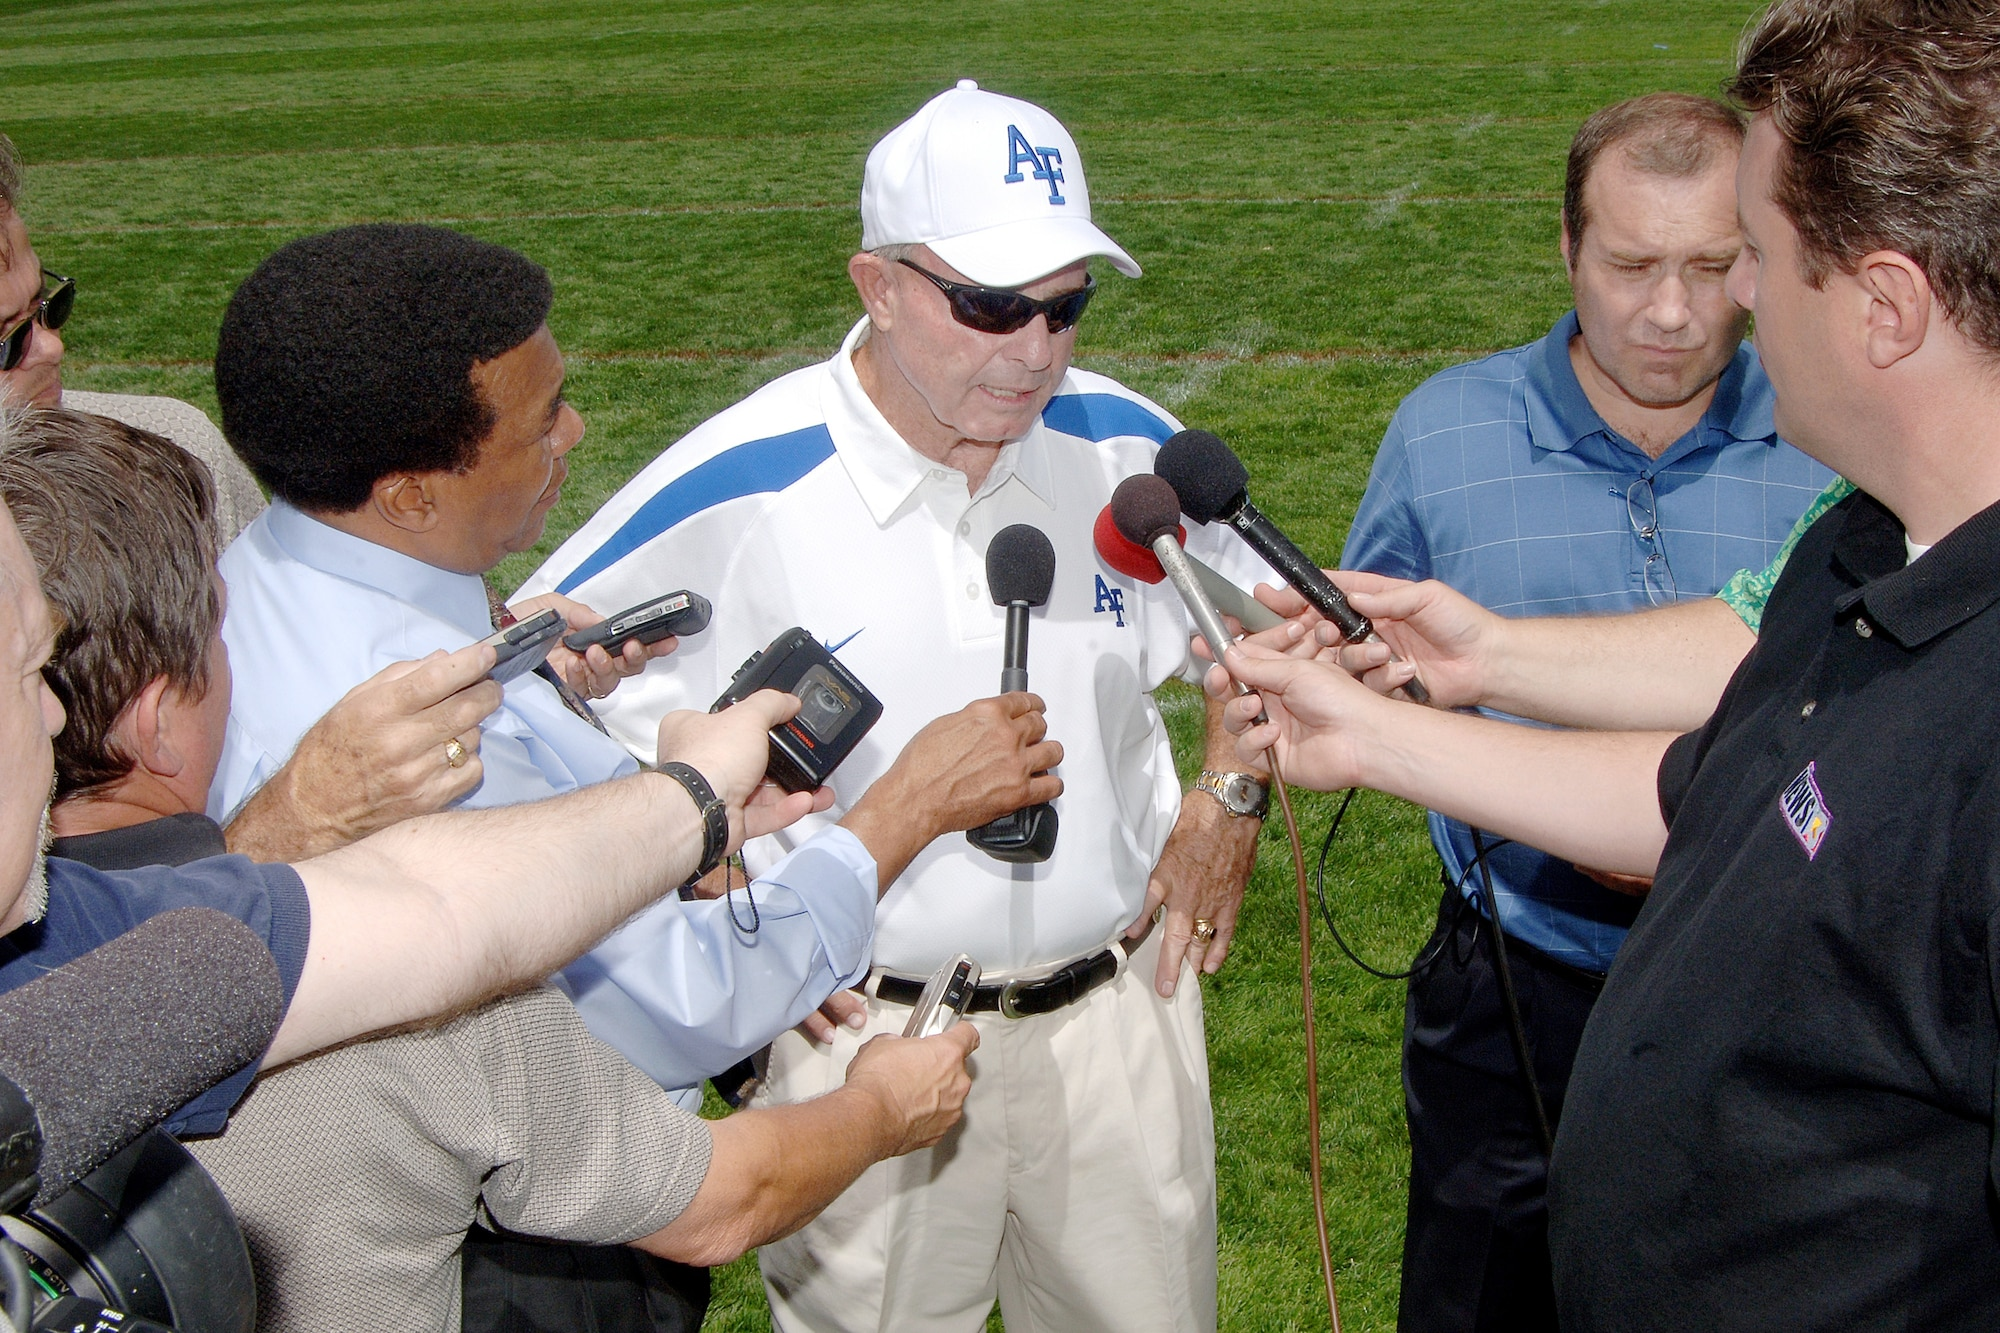 Air Force head football coach Fisher DeBerry addresses media day reporters at the U.S. Air Force Academy following his team's first practice of the year. Despite two straight losing seasons, DeBerry enters his 23rd campaign patrolling the Falcon sidelines as the all-time winningest coach in service academy history with a 165-101-1 overall record. (U.S. Air Force photo/Danny Meyer)